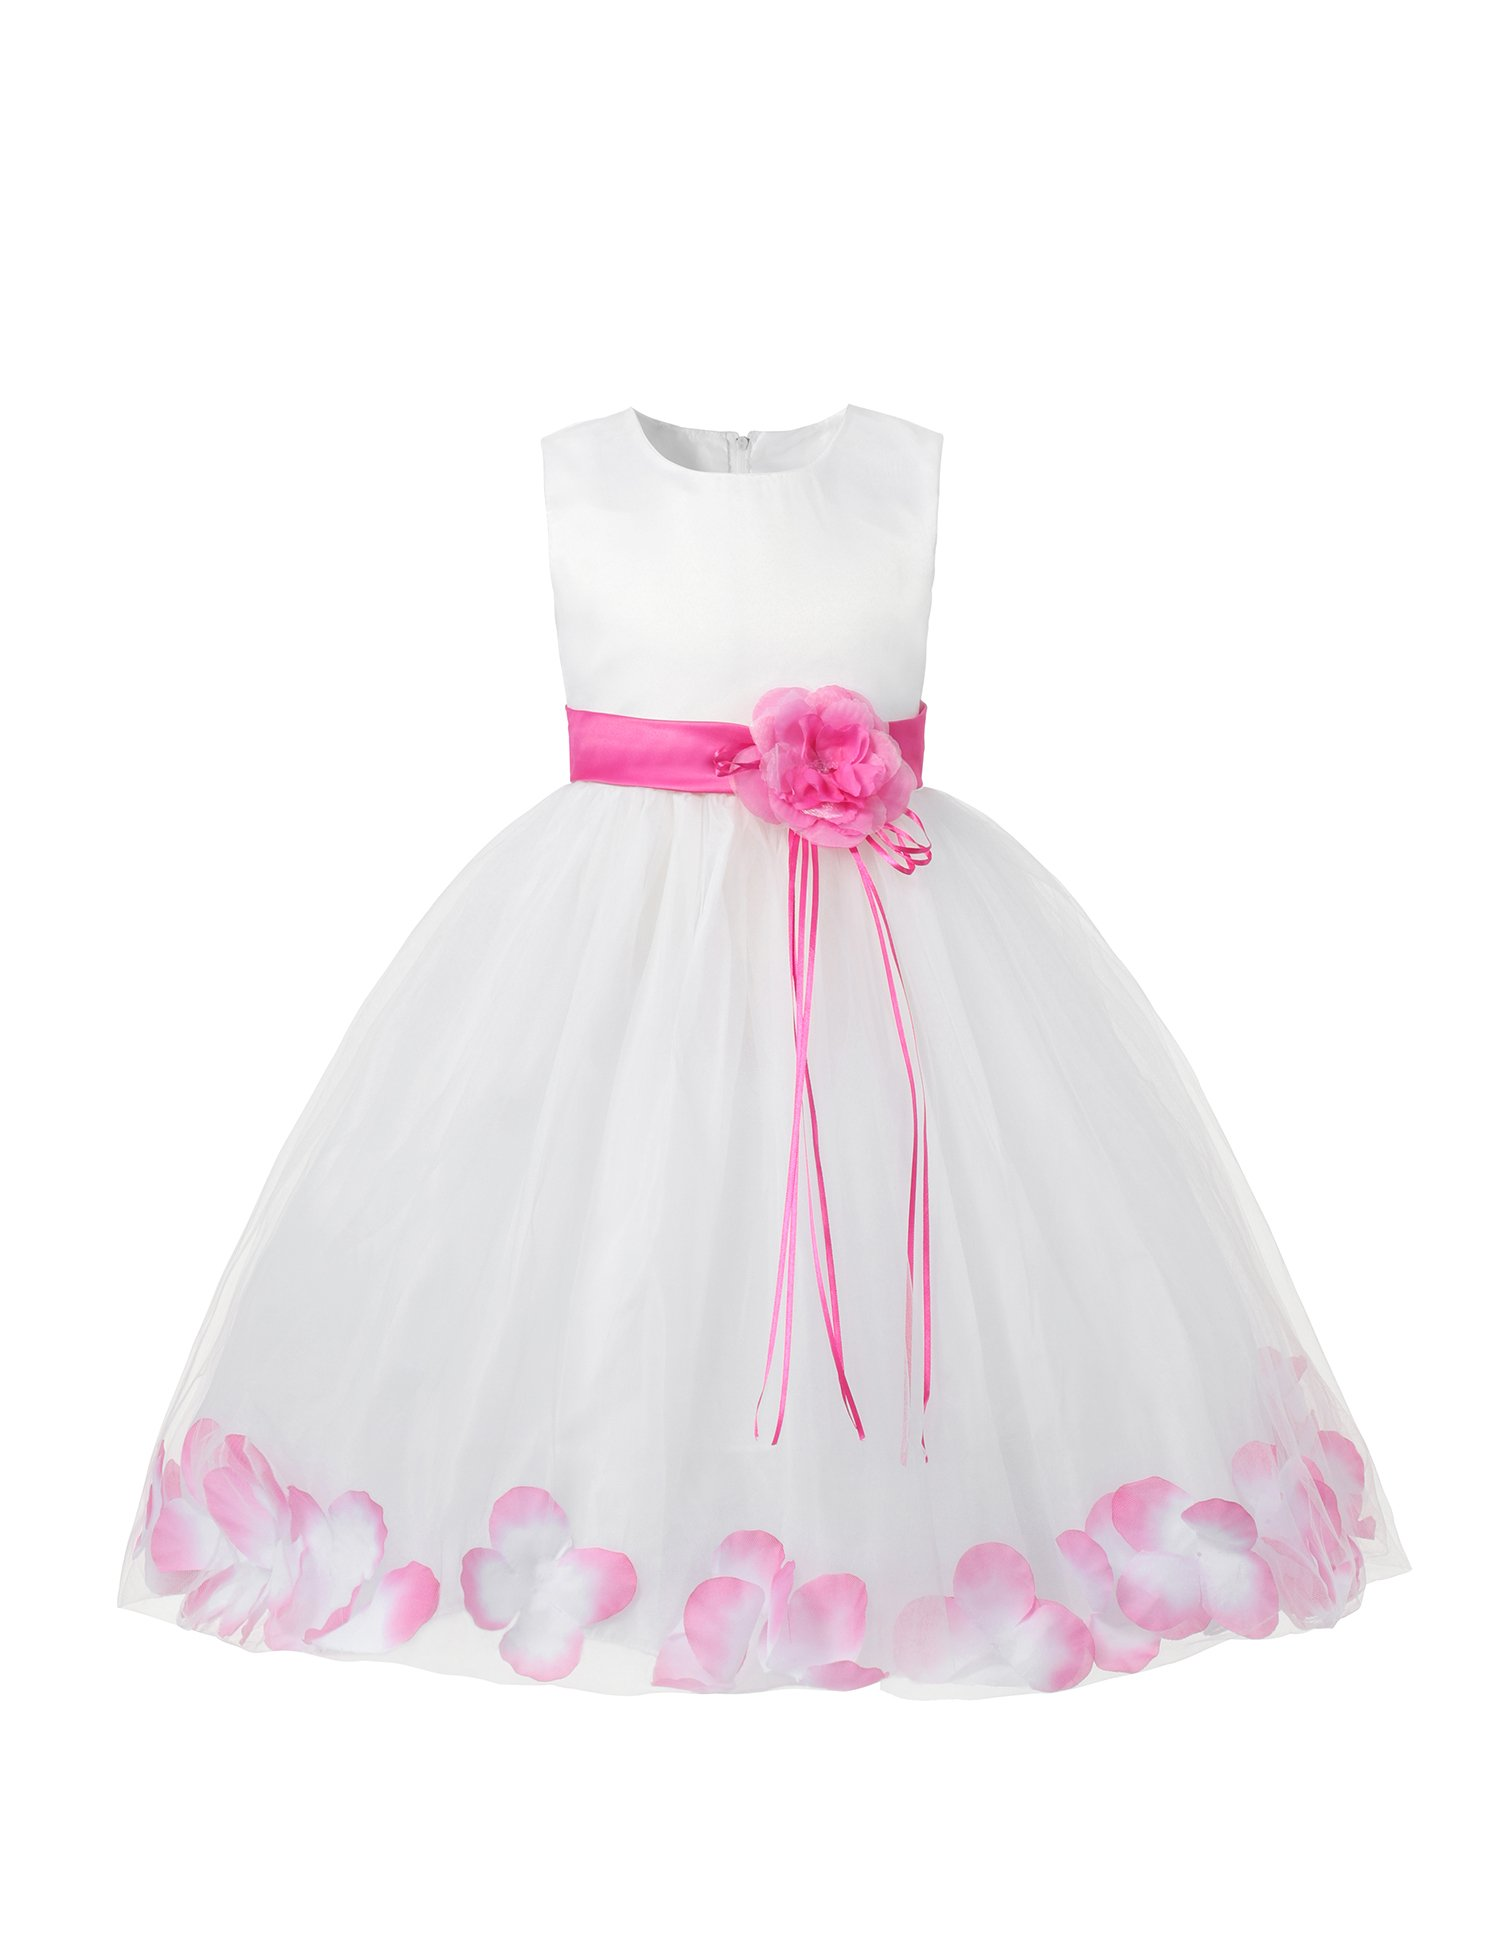 Little Girl Tutu Flower Petals Bow Dress Chiffon Princess Dresses for Wedding Party(5 Years,Pink)